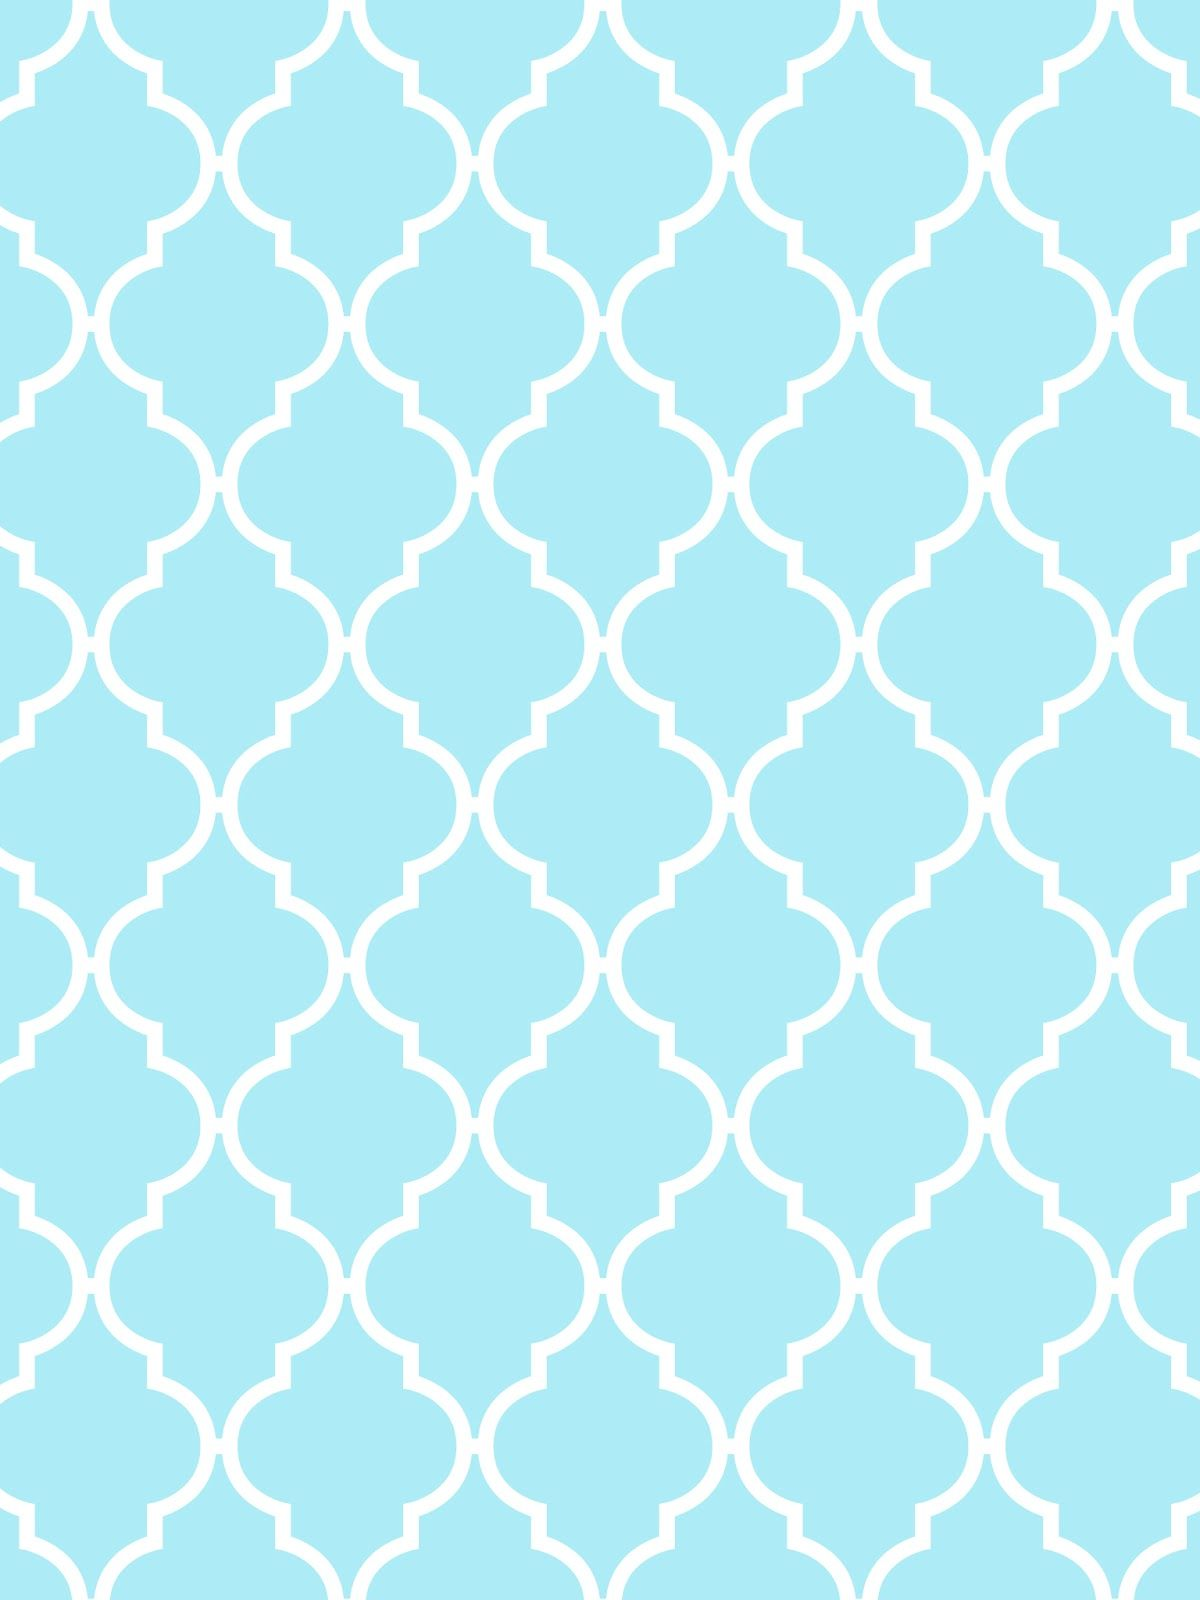 make itcreateprintables  backgroundswallpapers quatrefoil  - aqua and white quatrefoil wallpaper for electronics i would call this amoroccan tile pattern i would use it as a gift tag with maybe a littletouch of